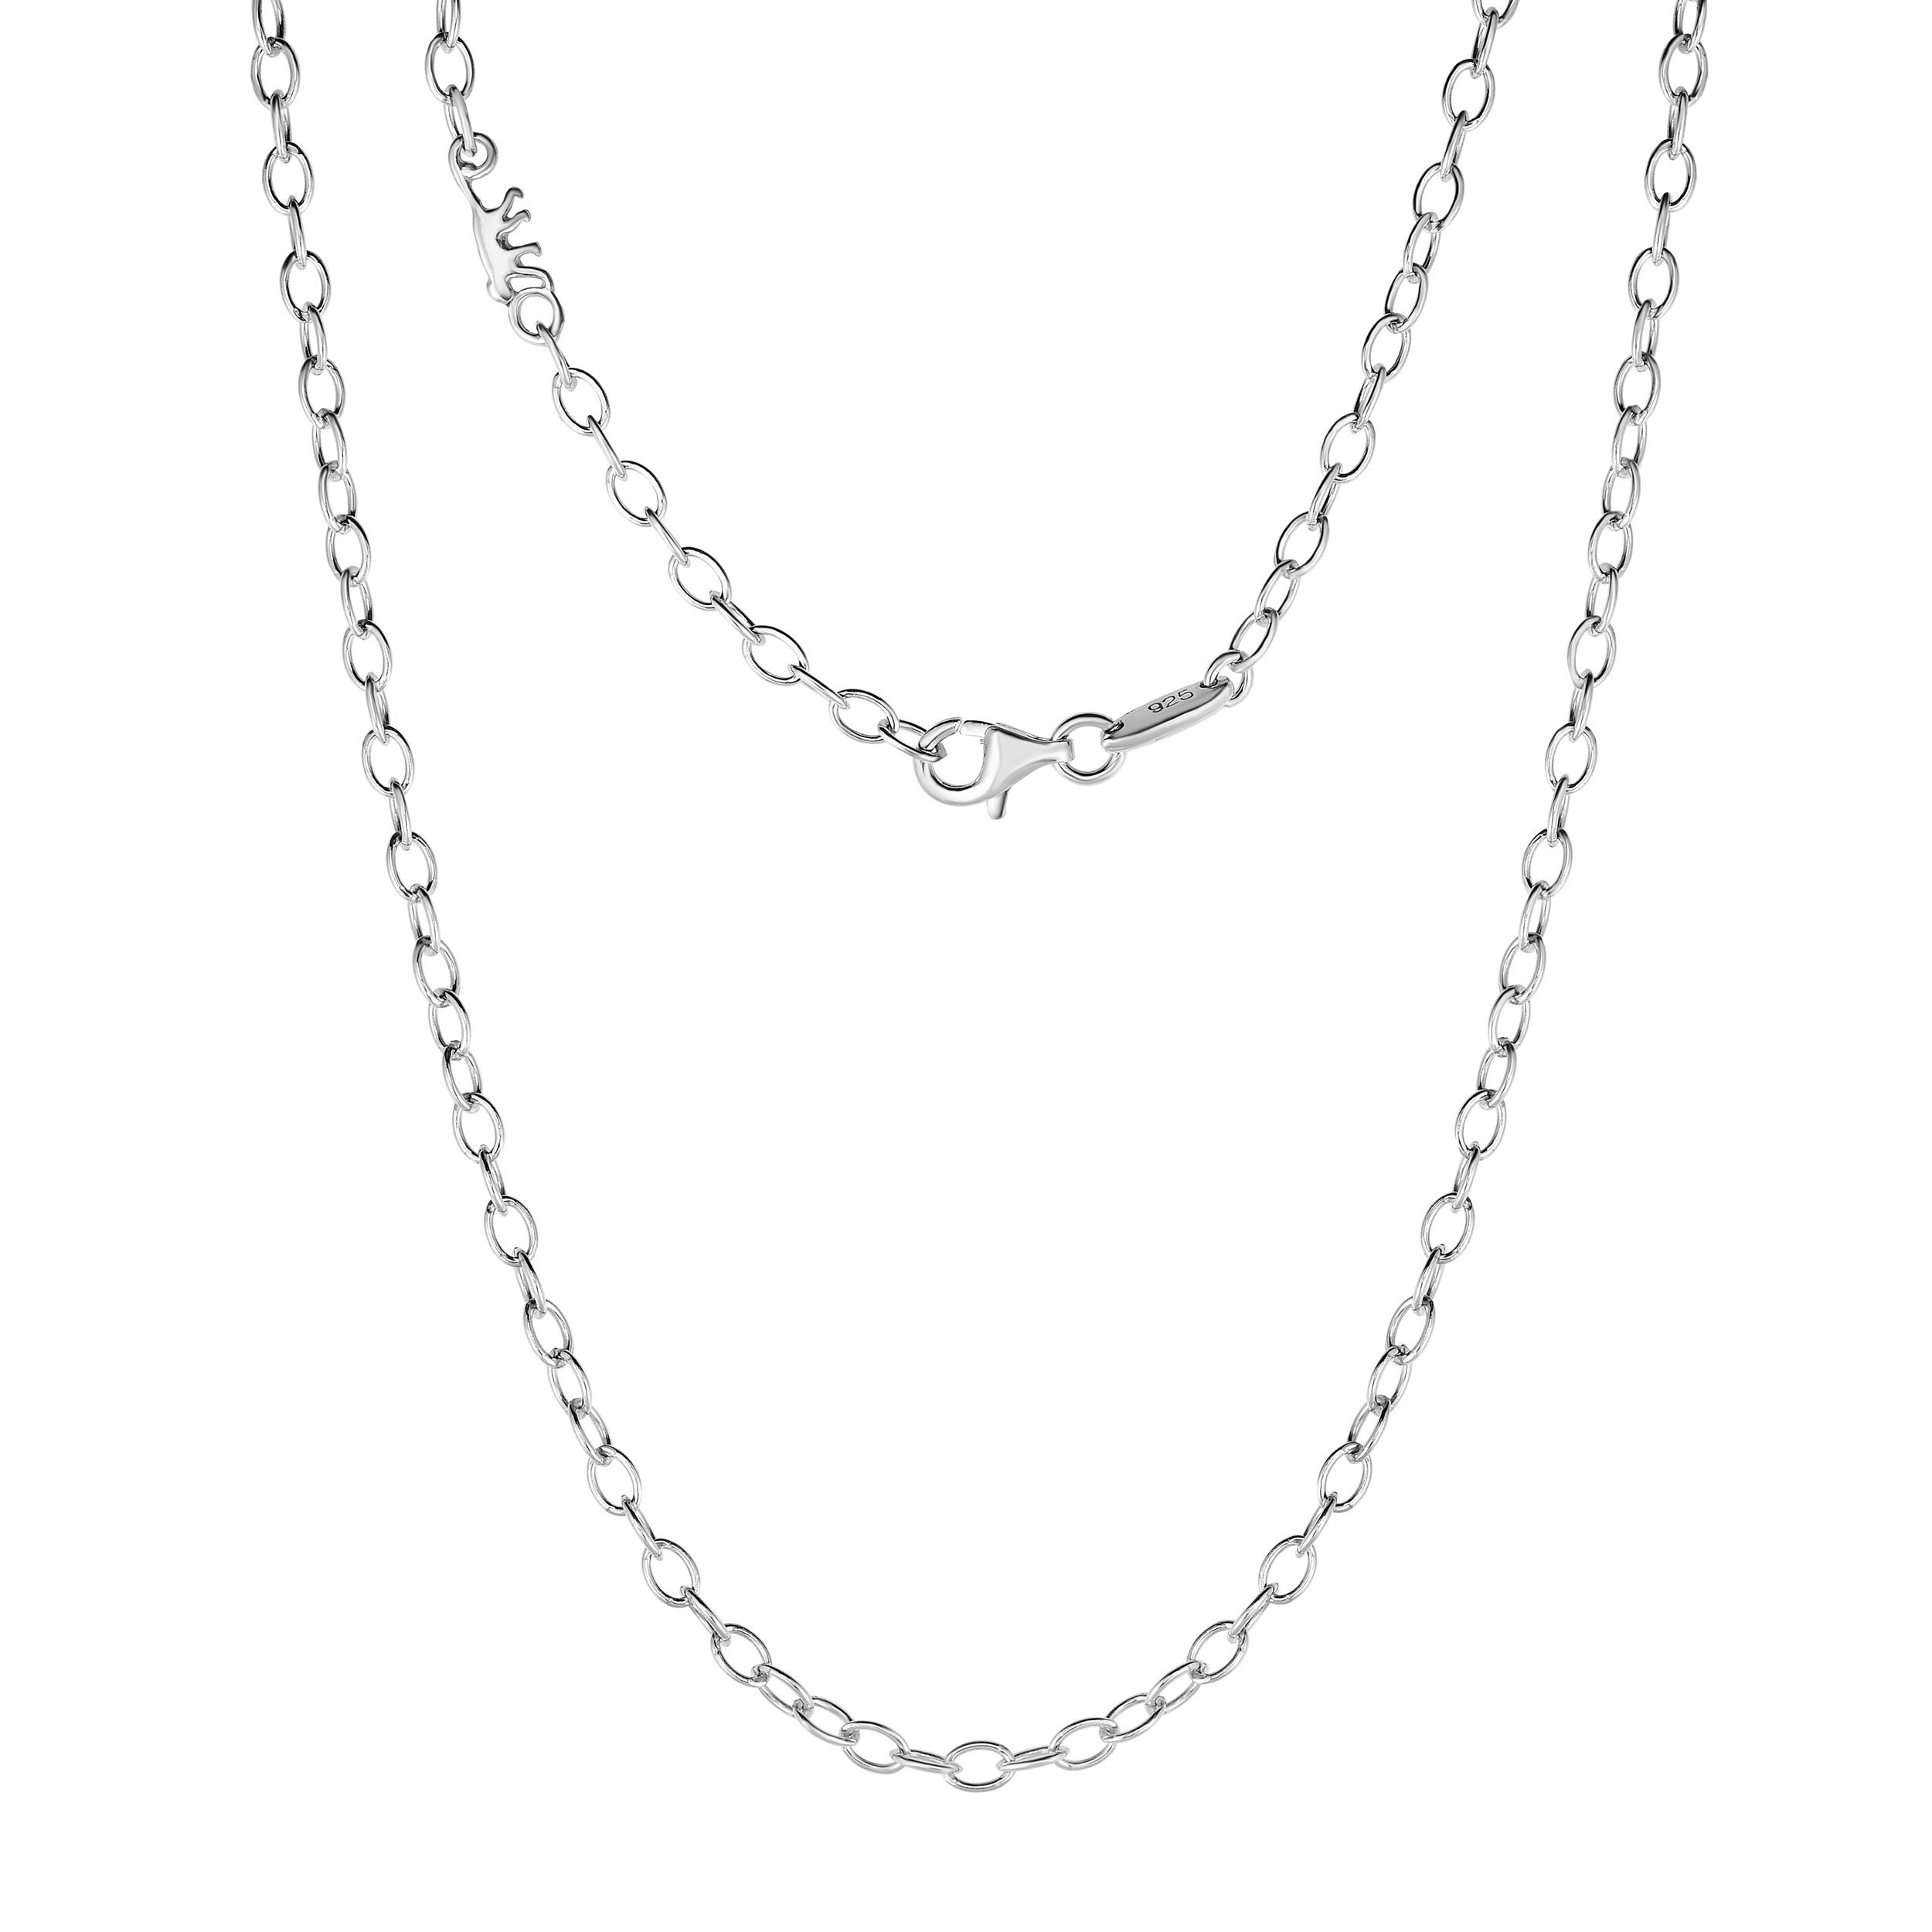 Kipling Children Sterling Silver Cable Chain Necklace – 39 Cm (15 1/3 Inch) Intended For Recent Classic Cable Chain Necklaces (Gallery 7 of 25)